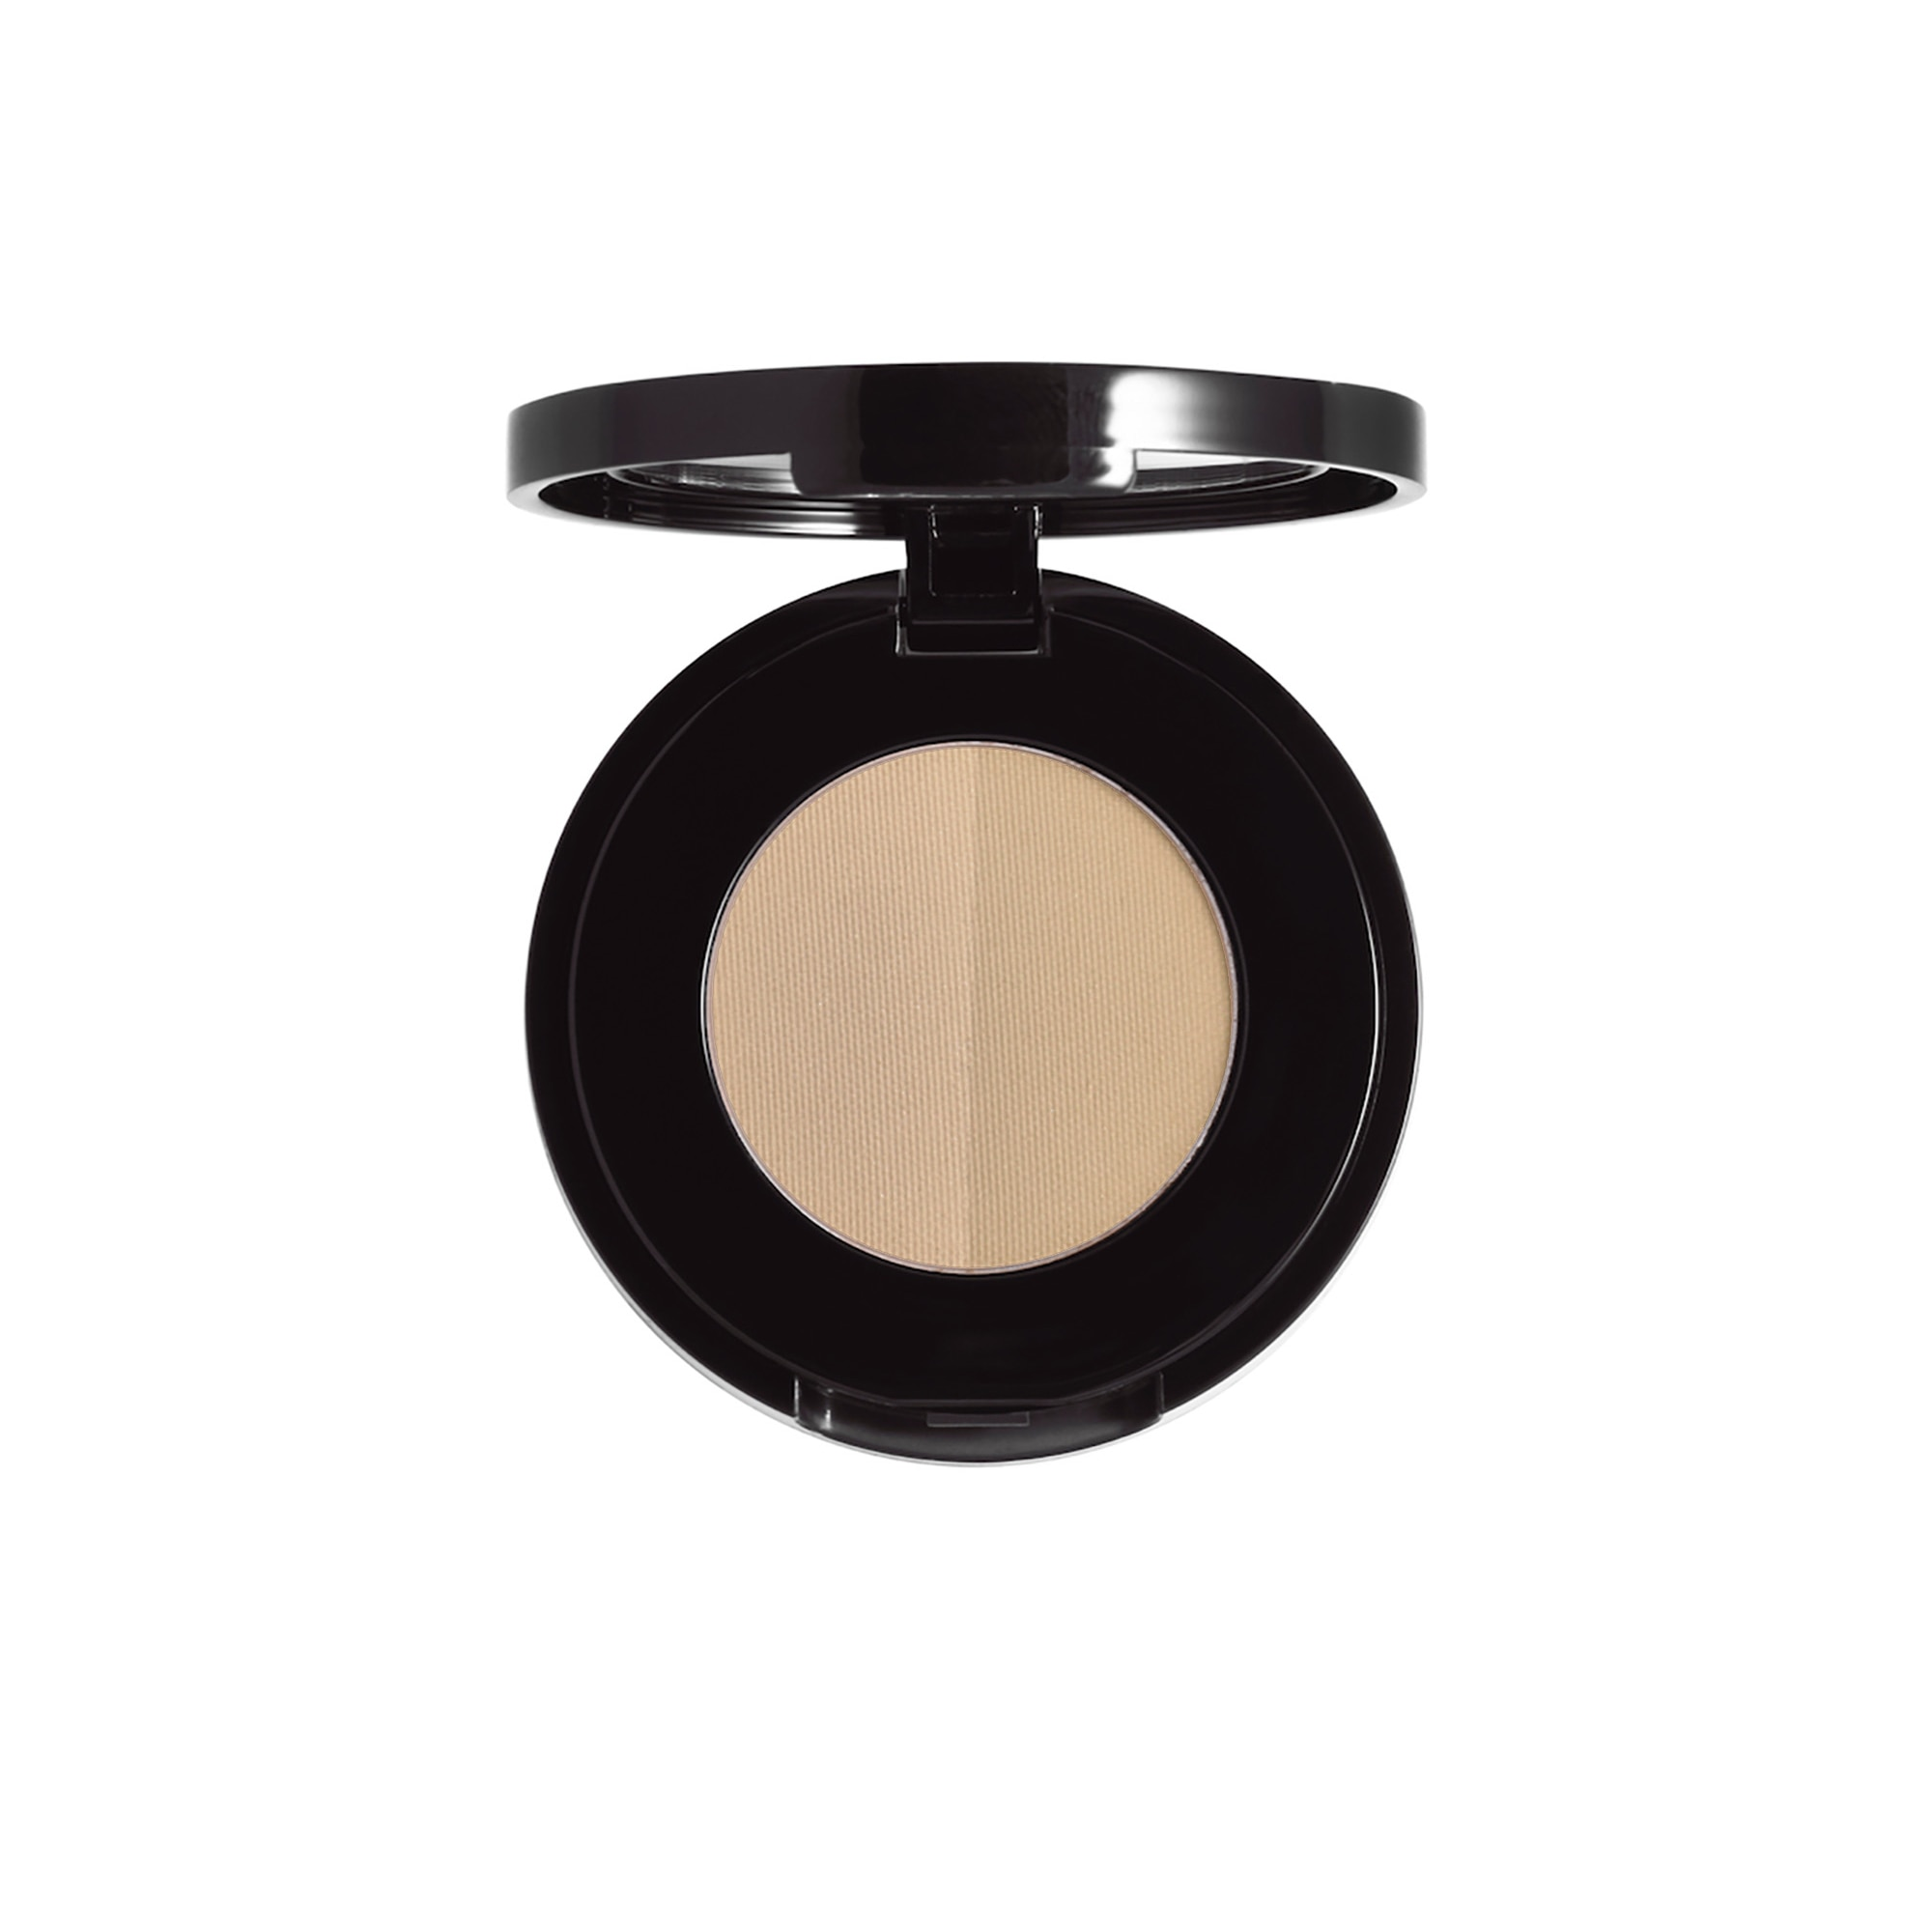 BROW POWDER DUO (SOMBRA DE CEJAS)